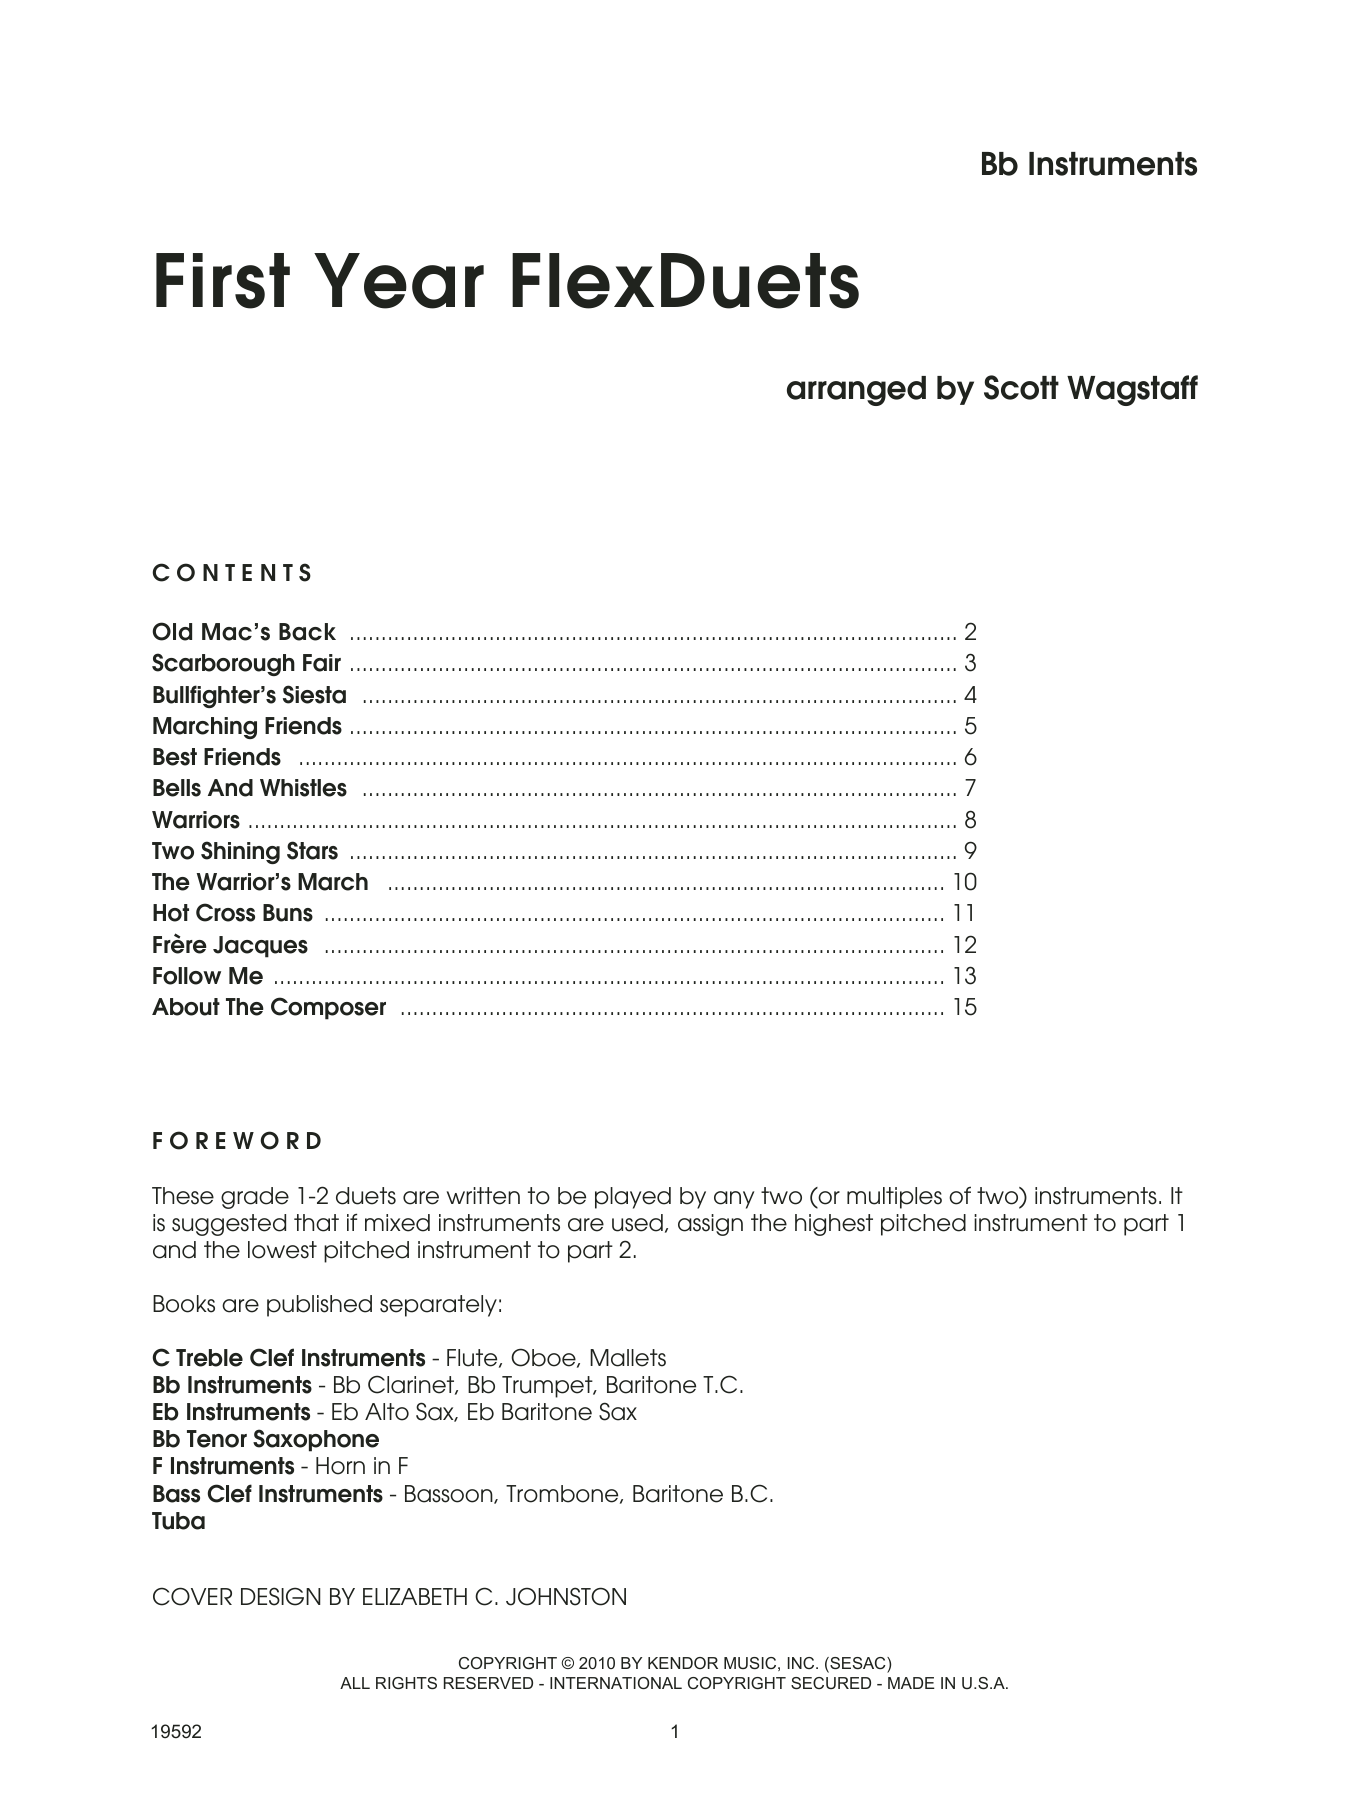 Scott Wagstaff First Year FlexDuets - Bb Instruments sheet music notes and chords. Download Printable PDF.